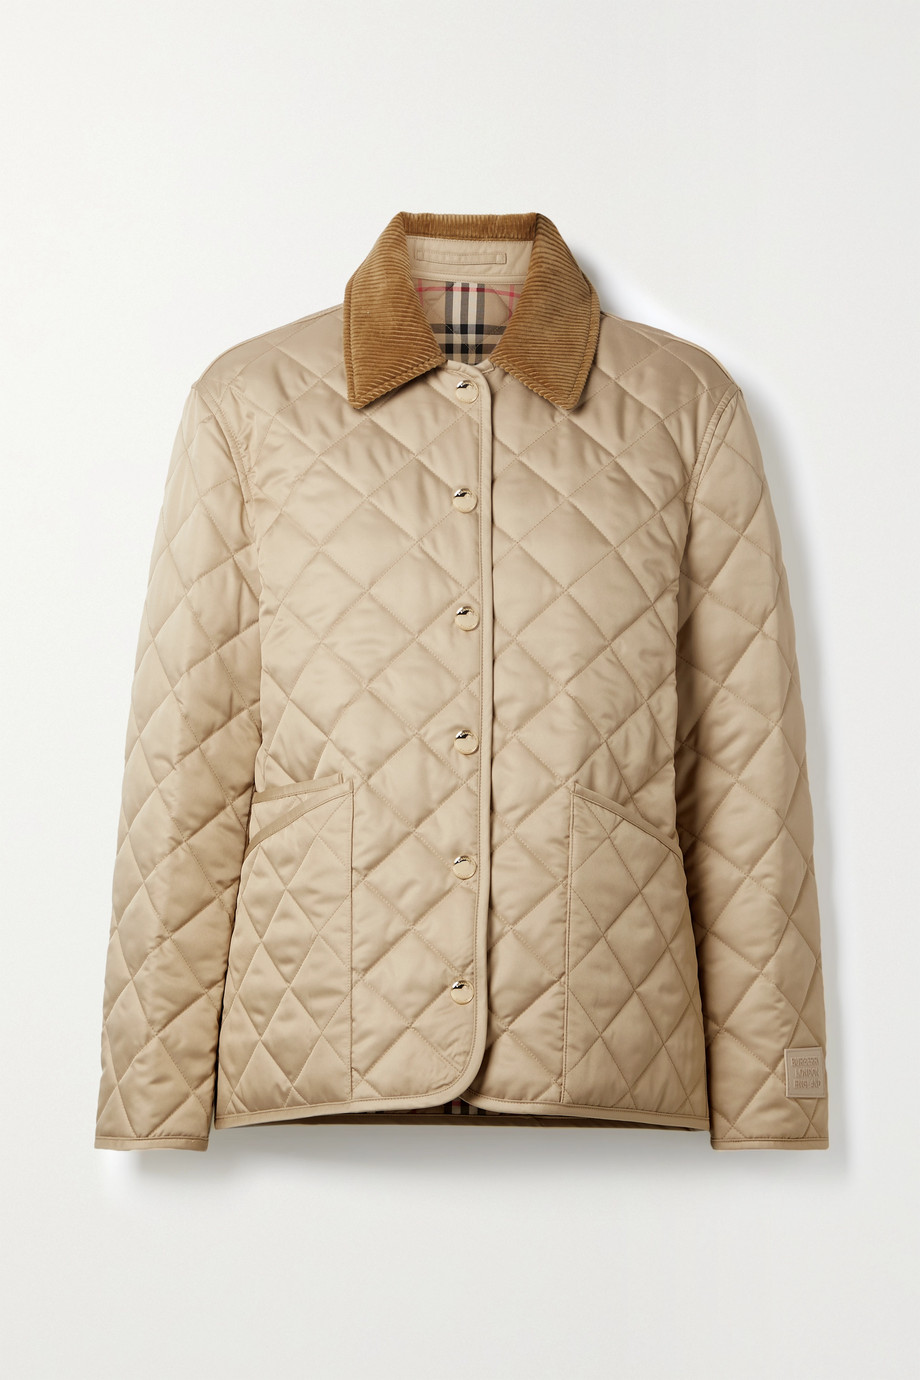 Burberry Corduroy-trimmed quilted shell jacket